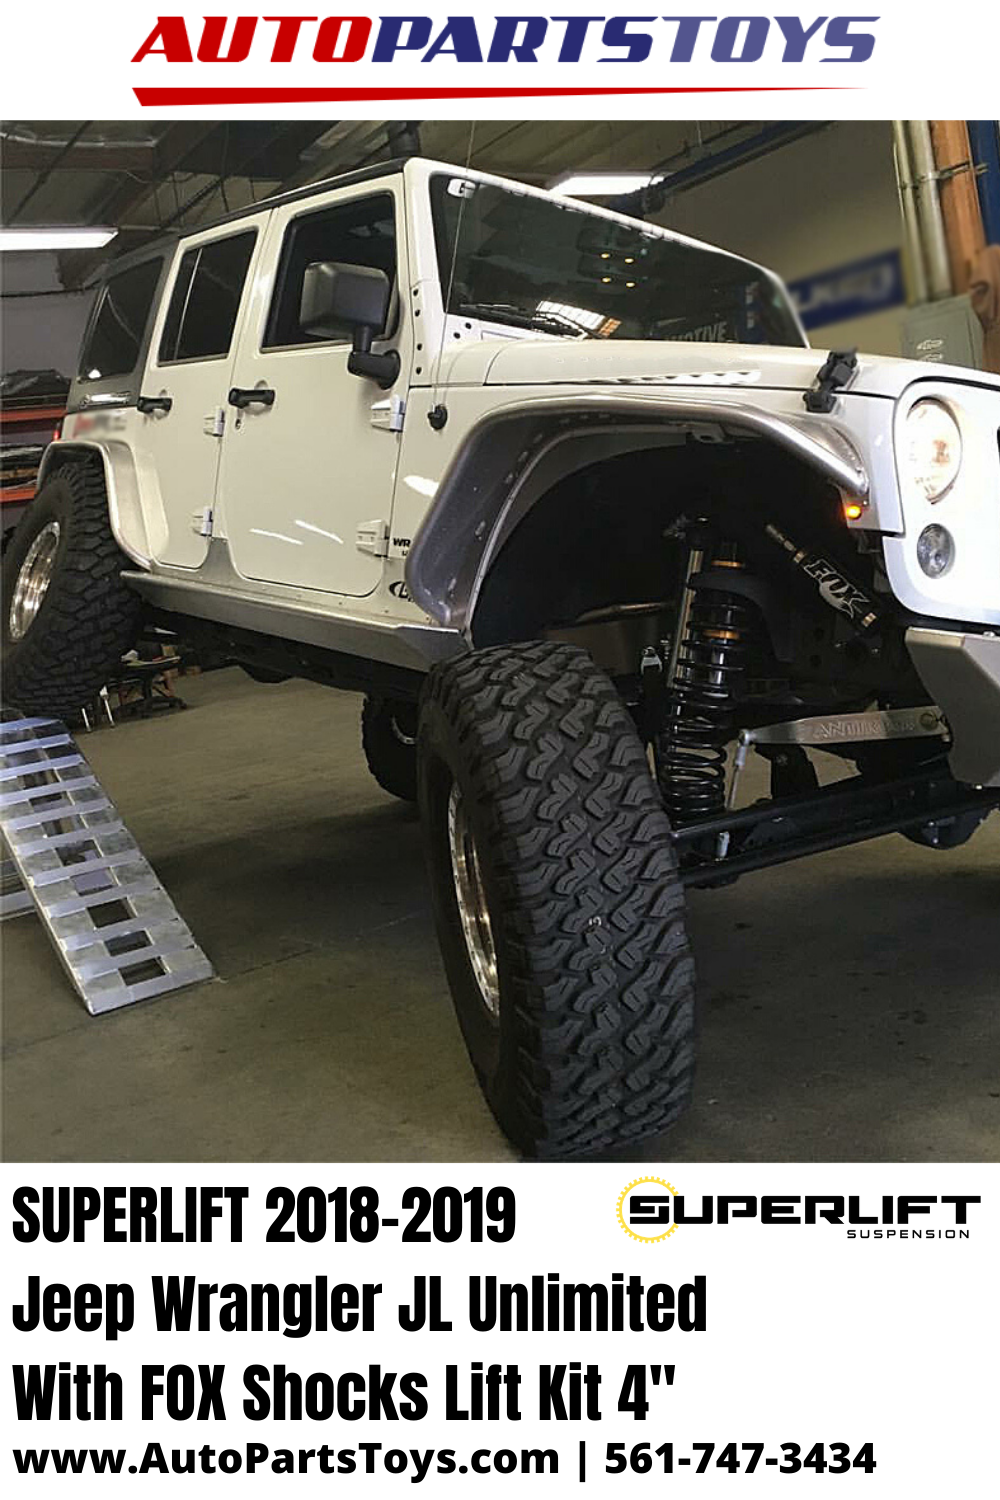 Superlift 2018 2019 Jeep Wrangler Jl Unlimited With Fox Shocks Lift Kit 4 In 2020 Lift Kits Wrangler Jl Jeep Wrangler